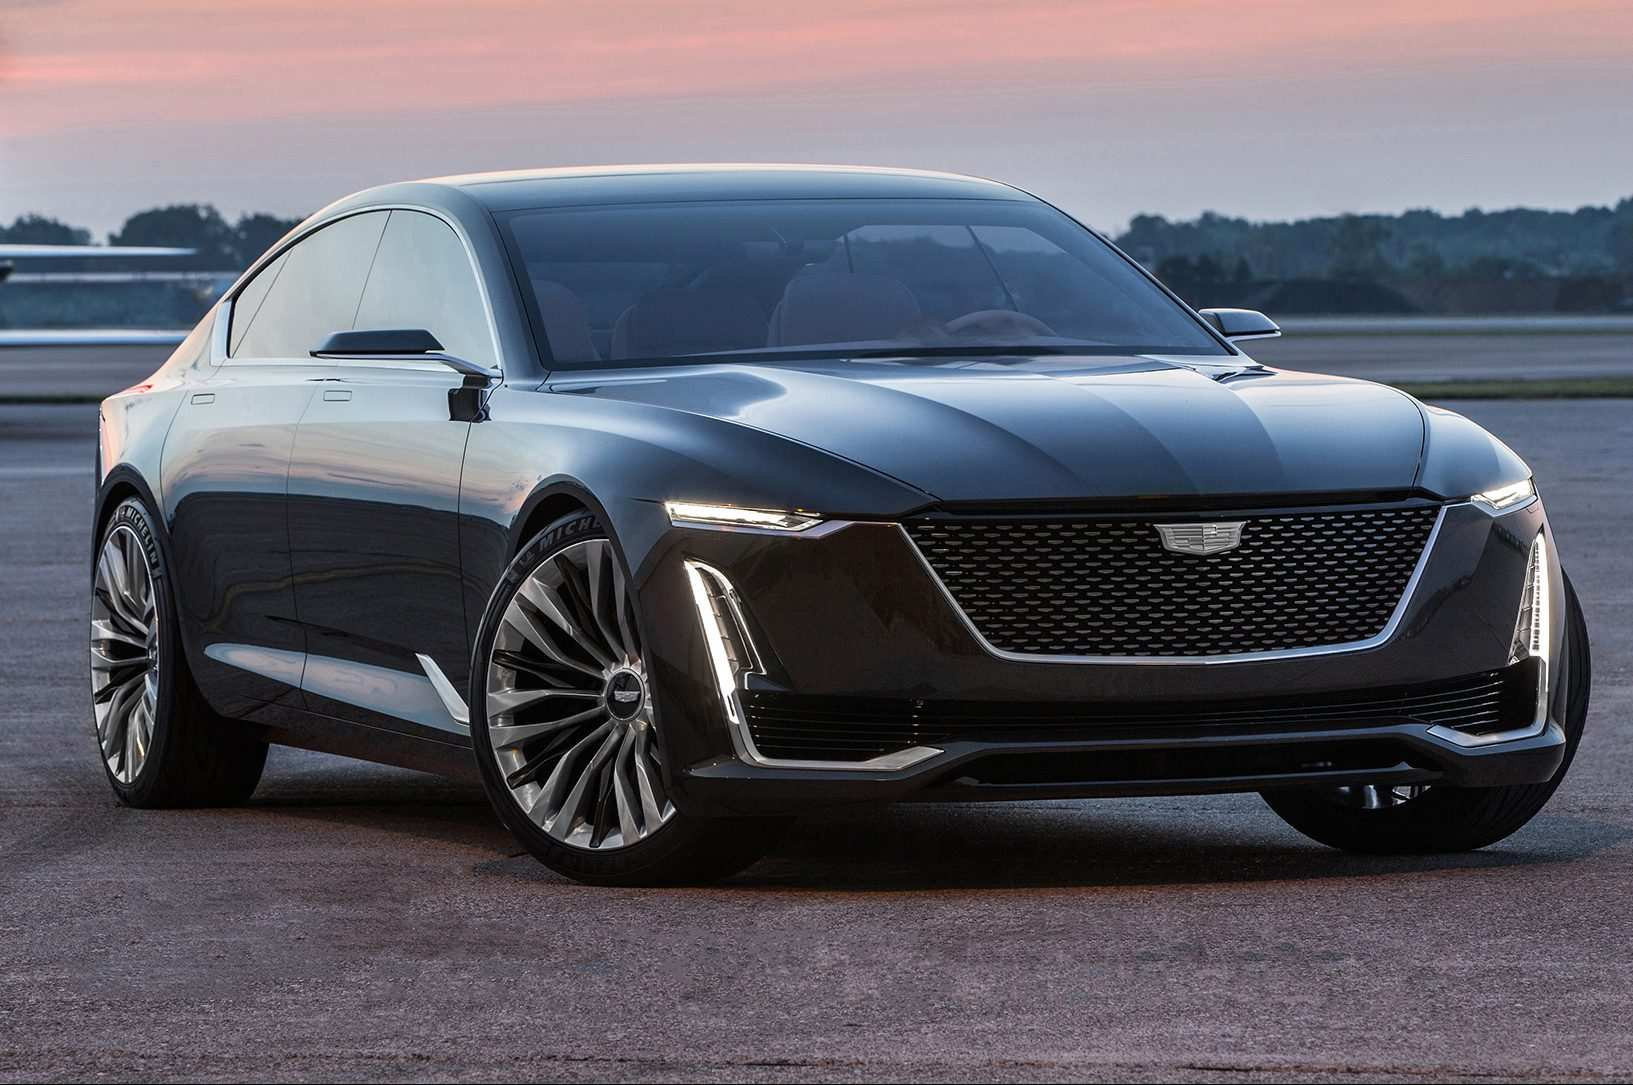 50 Best Review 2020 Cadillac Truck Prices by 2020 Cadillac Truck